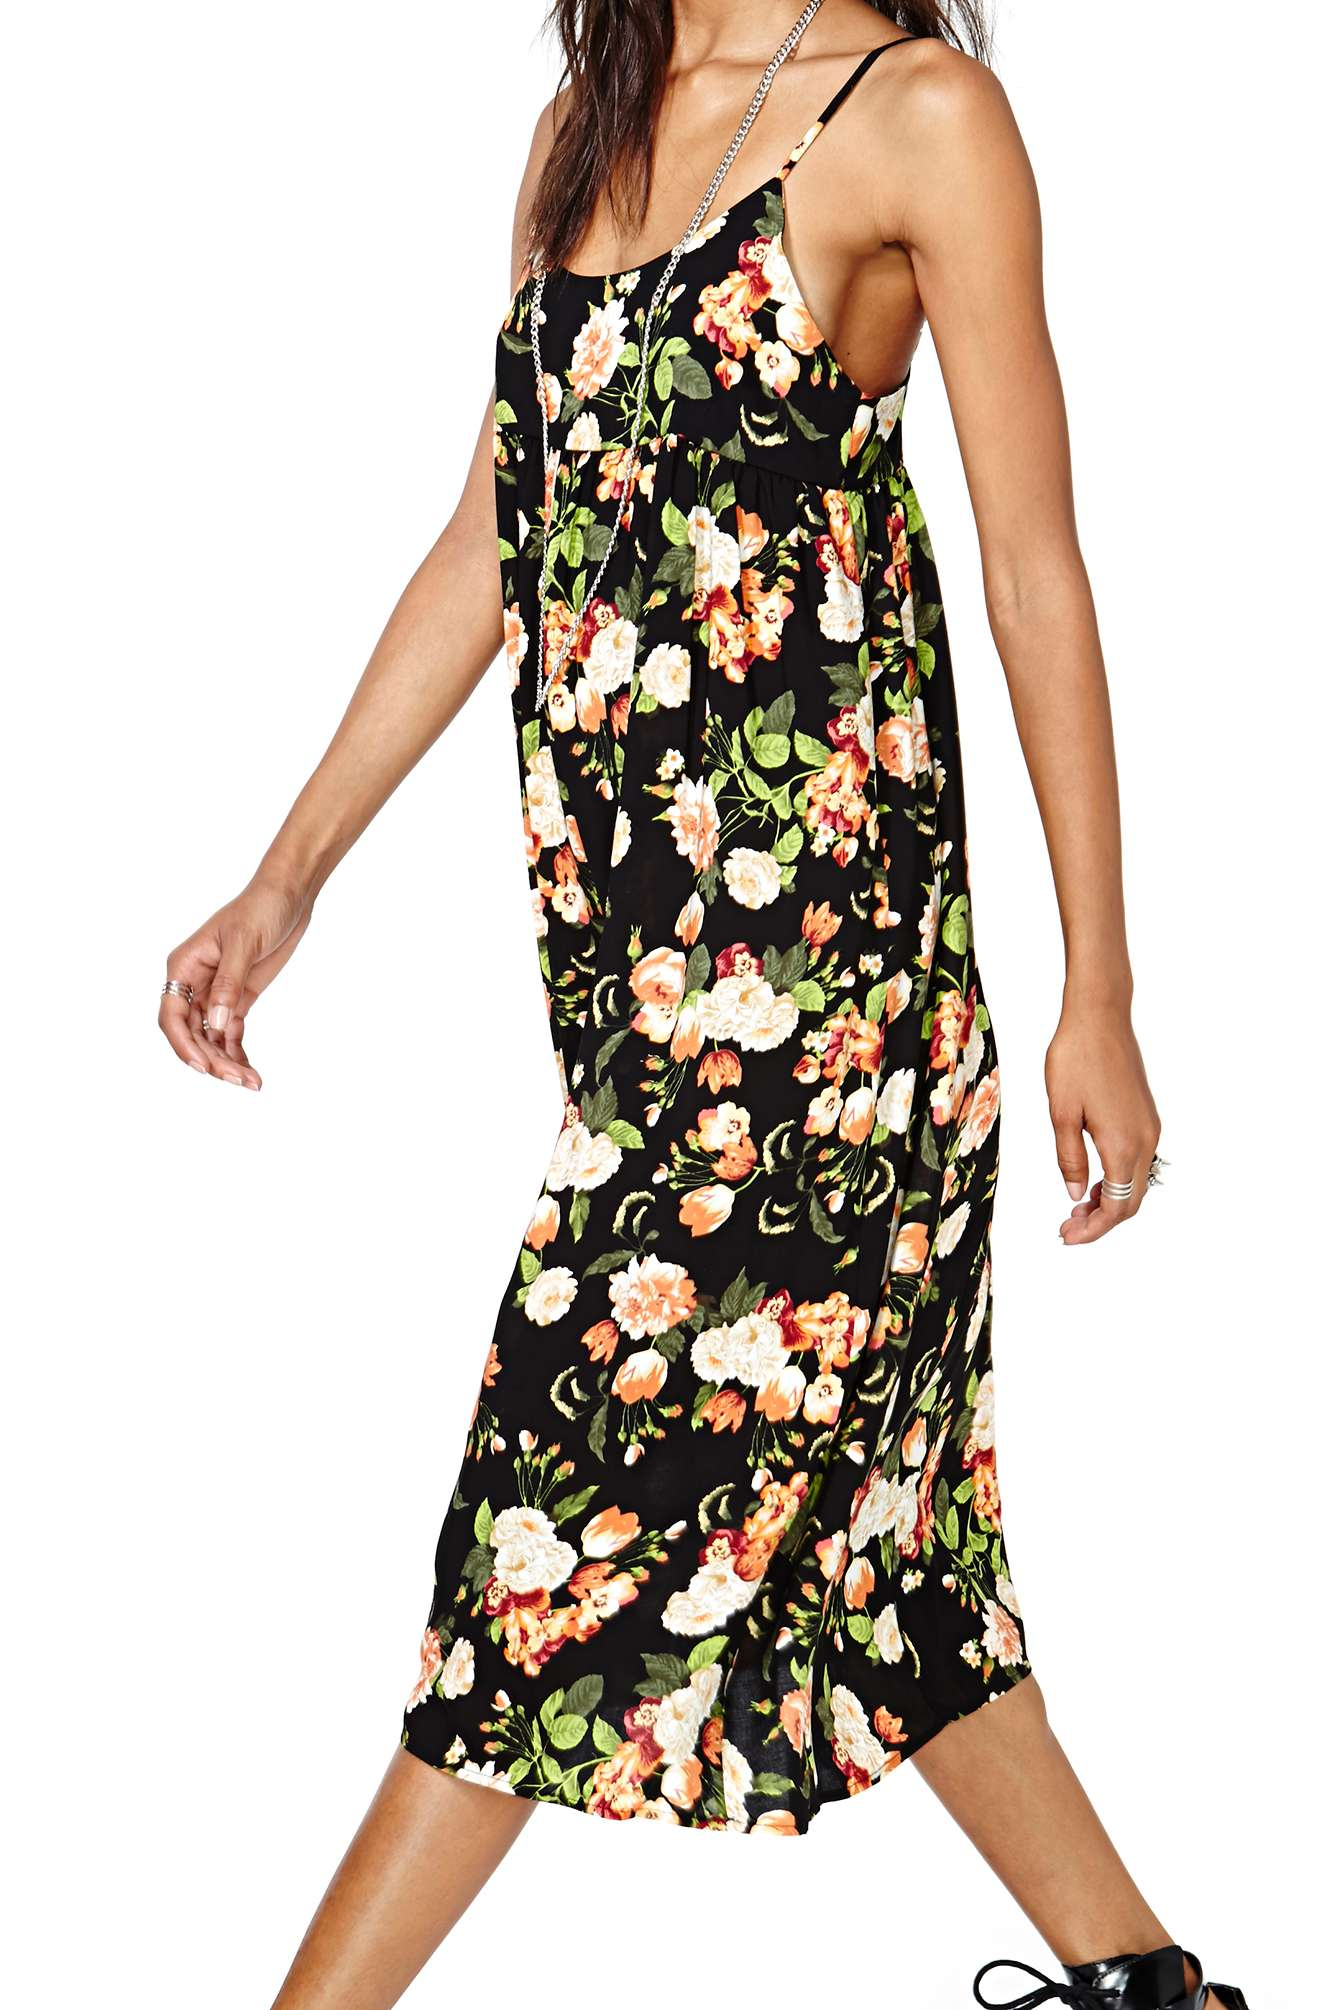 Romp in the Roses Maxi Dress